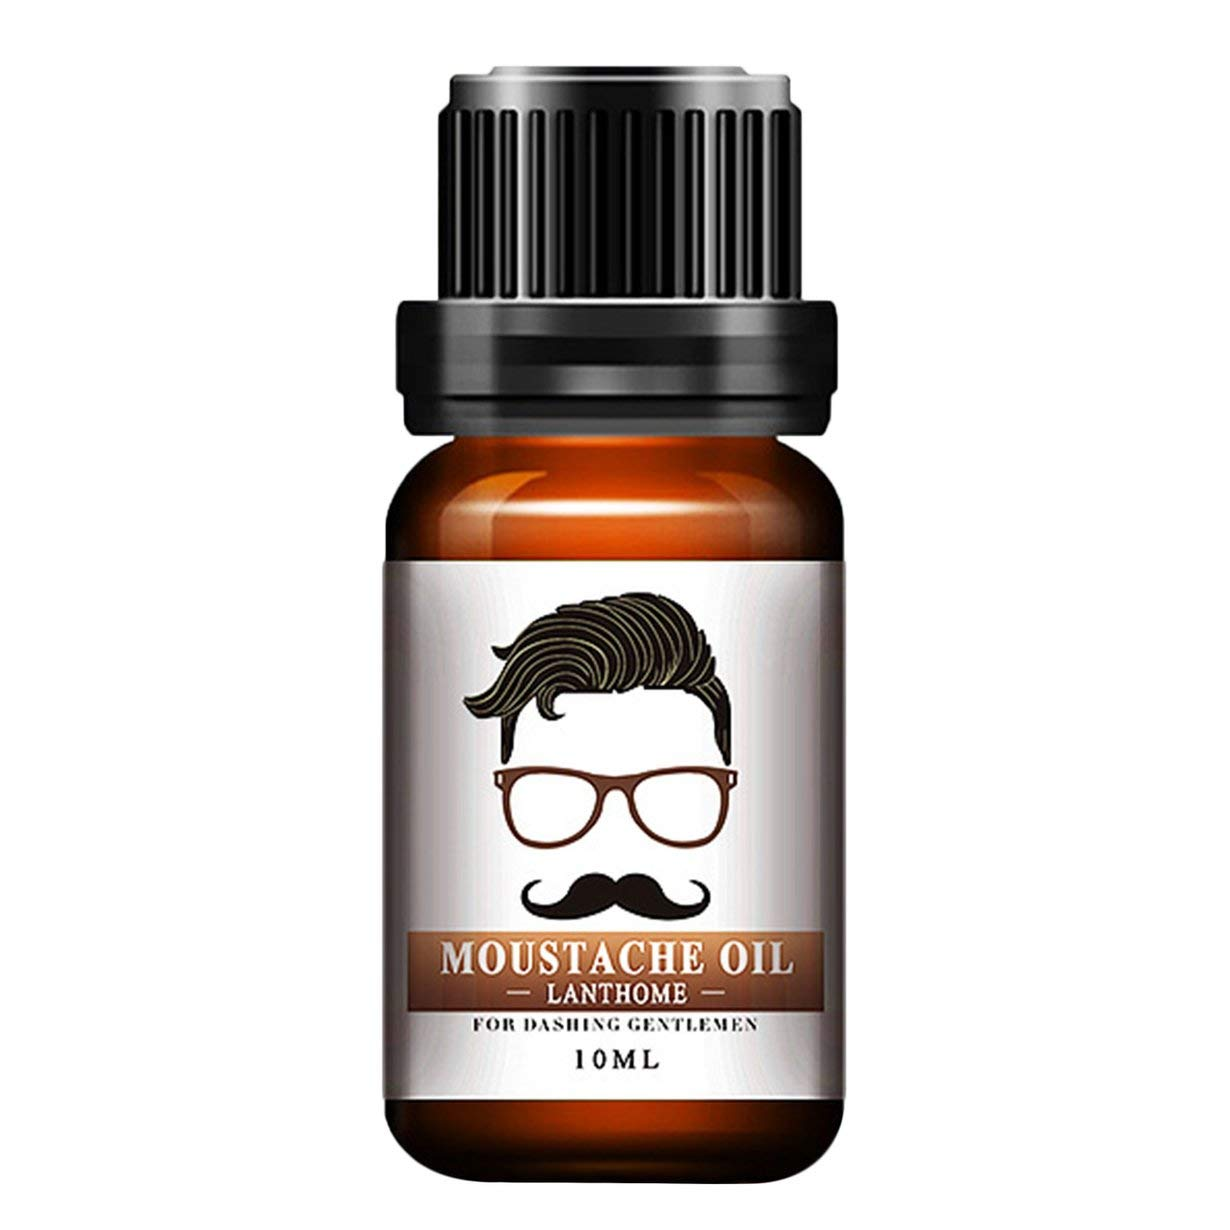 Men Natural Organic Styling Moustache Oil Moisturizing Smoothing Dashing Signori Beard Oil Face Hair Care UniqueHeart